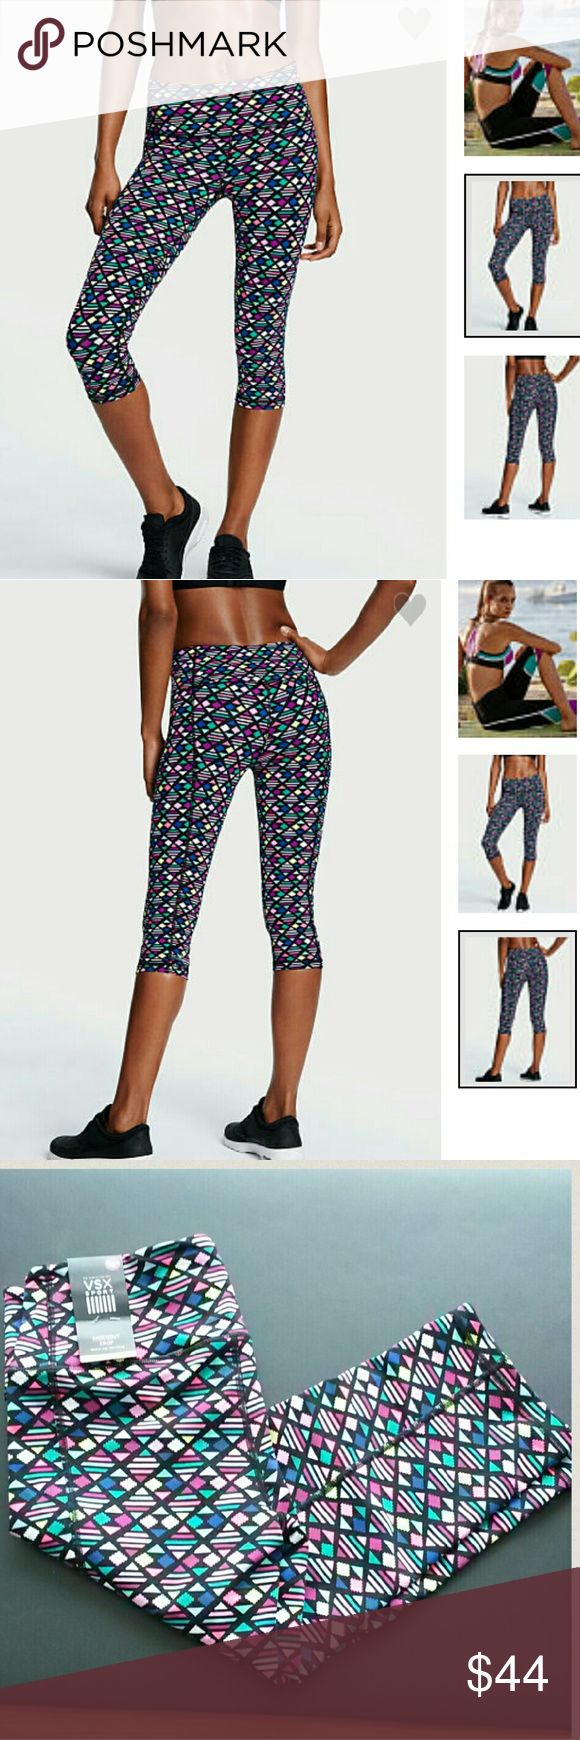 Victoria's Secret Knockout Crop Pants Brand new crop pants by Victoria's Secret Sport. Geo pixel color (color is most accurate in first 2 pictures). Medium rise and form fitting. Size medium. These crops are great quality! Victoria's Secret Pants Ankle & Cropped